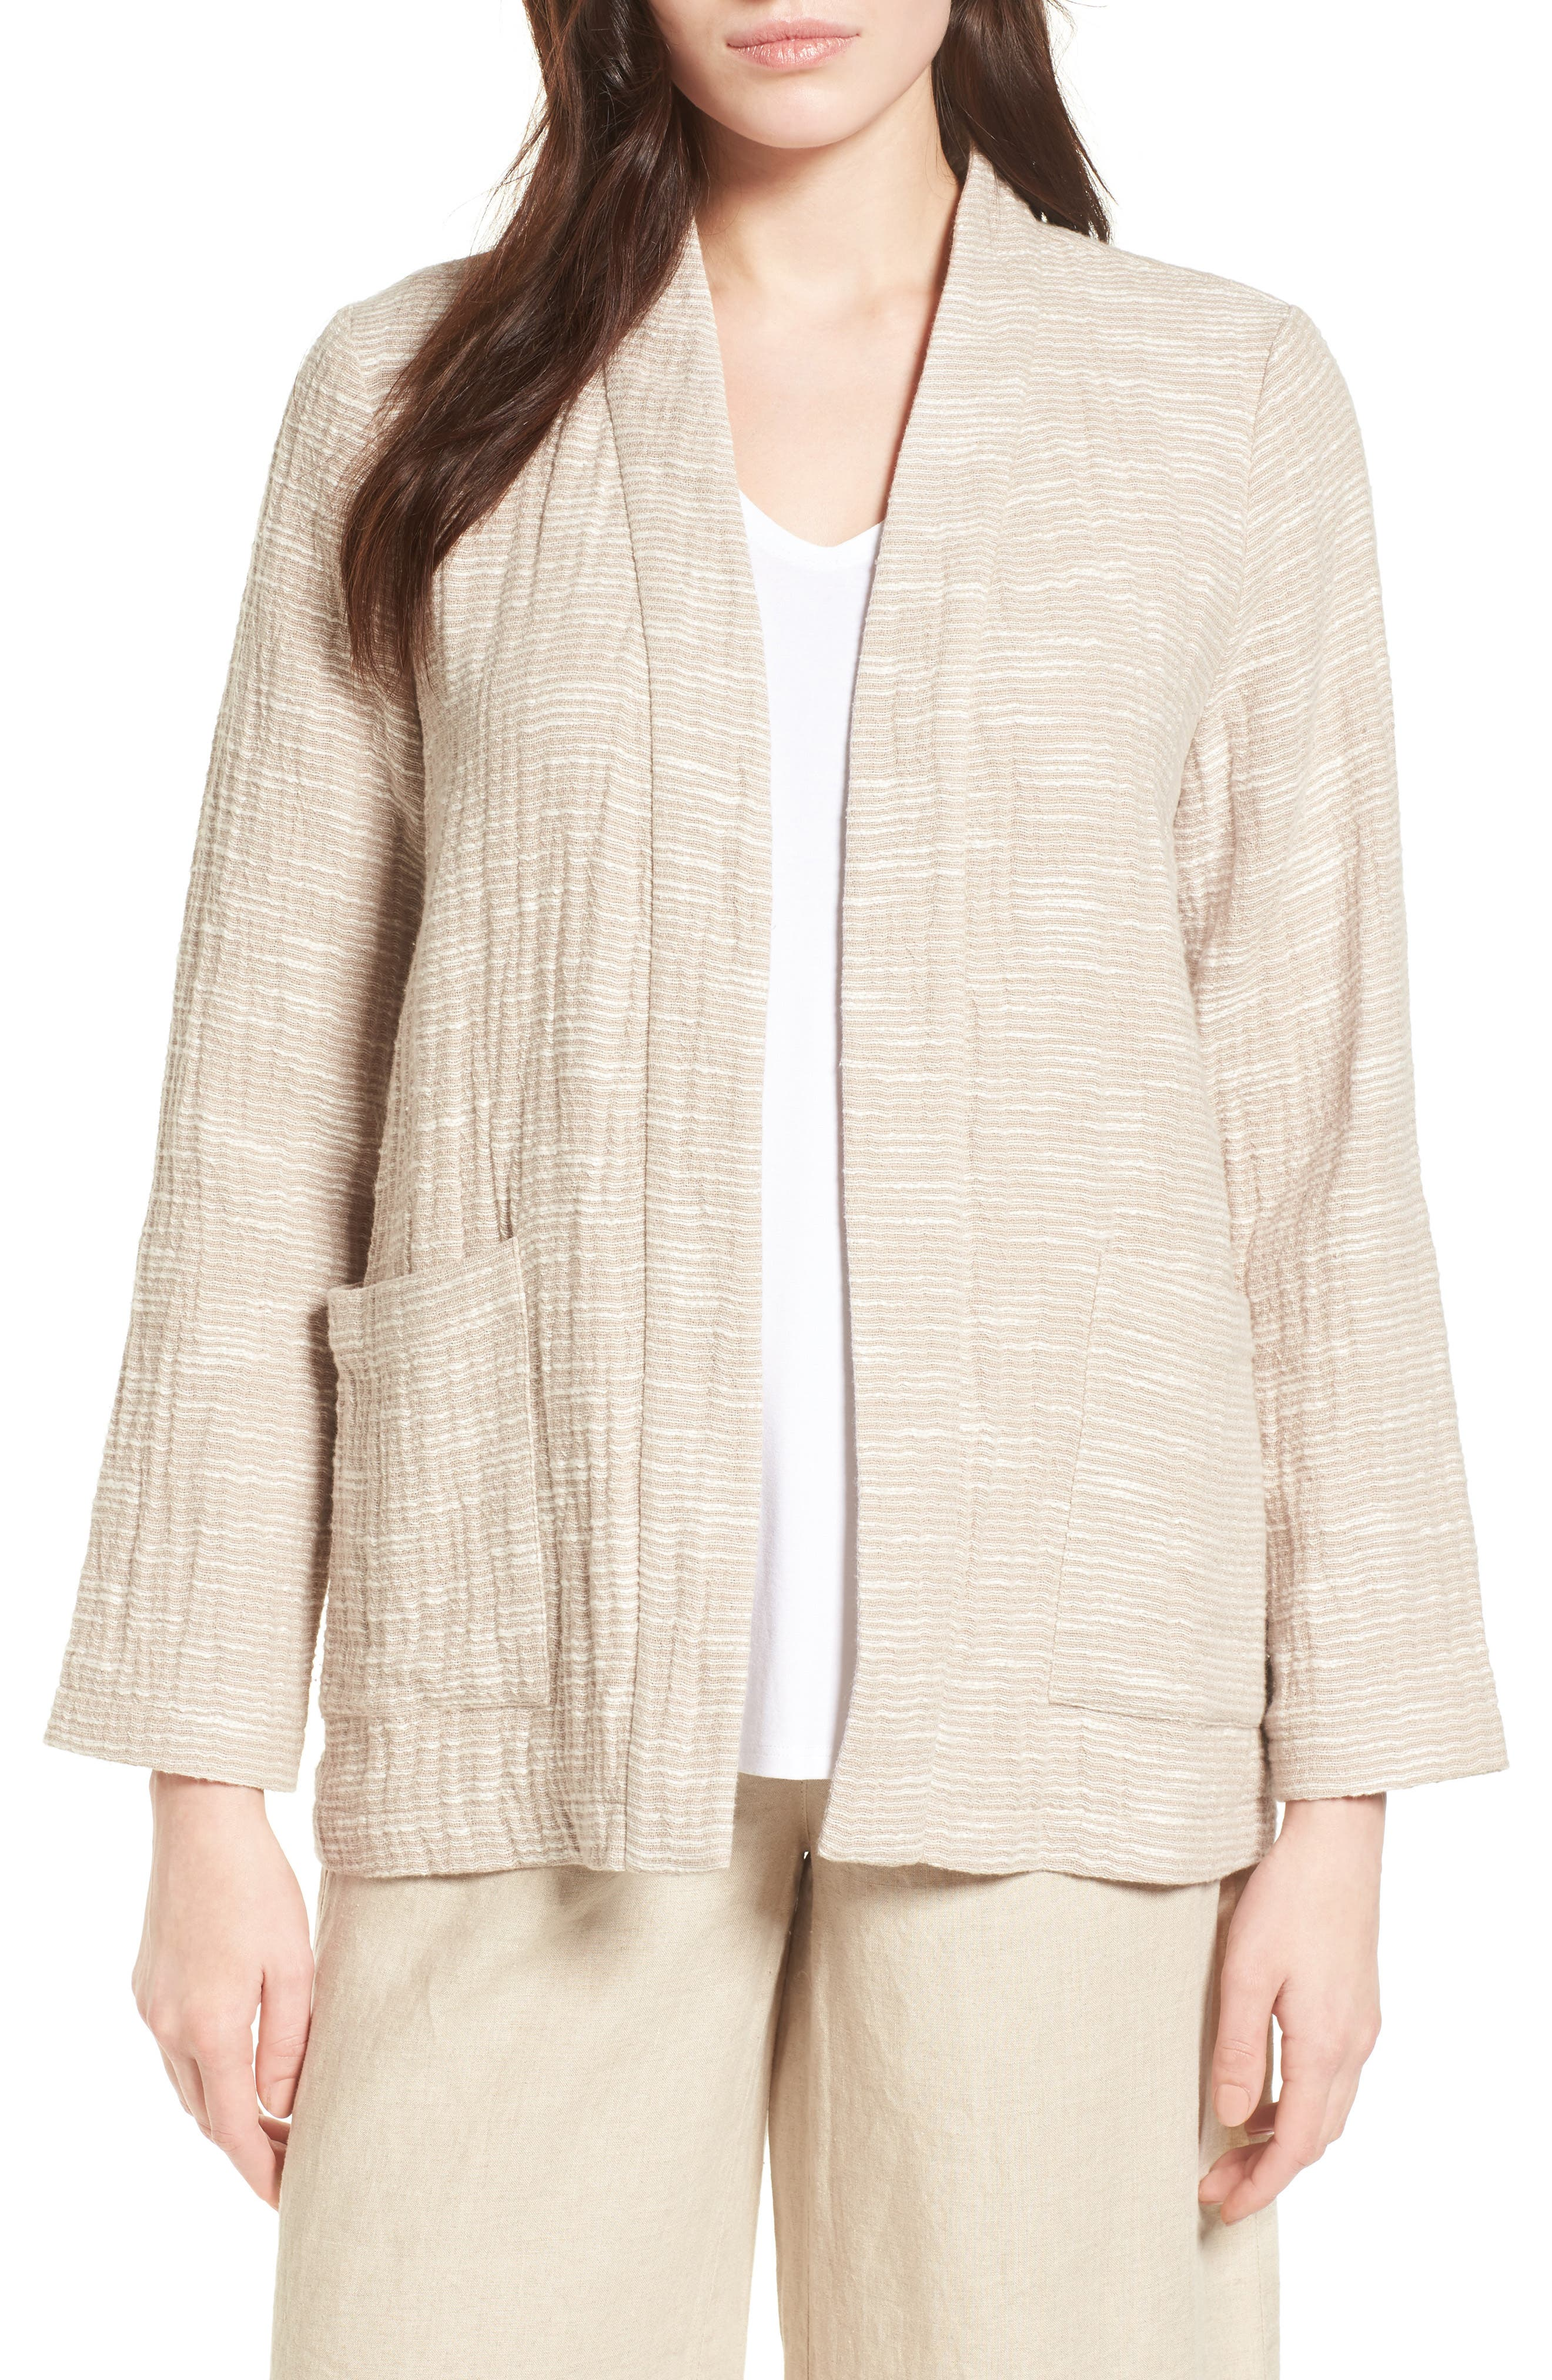 Eileen Fisher Cotton Jacket (Regular & Petite) (Nordstrom Exclusive)